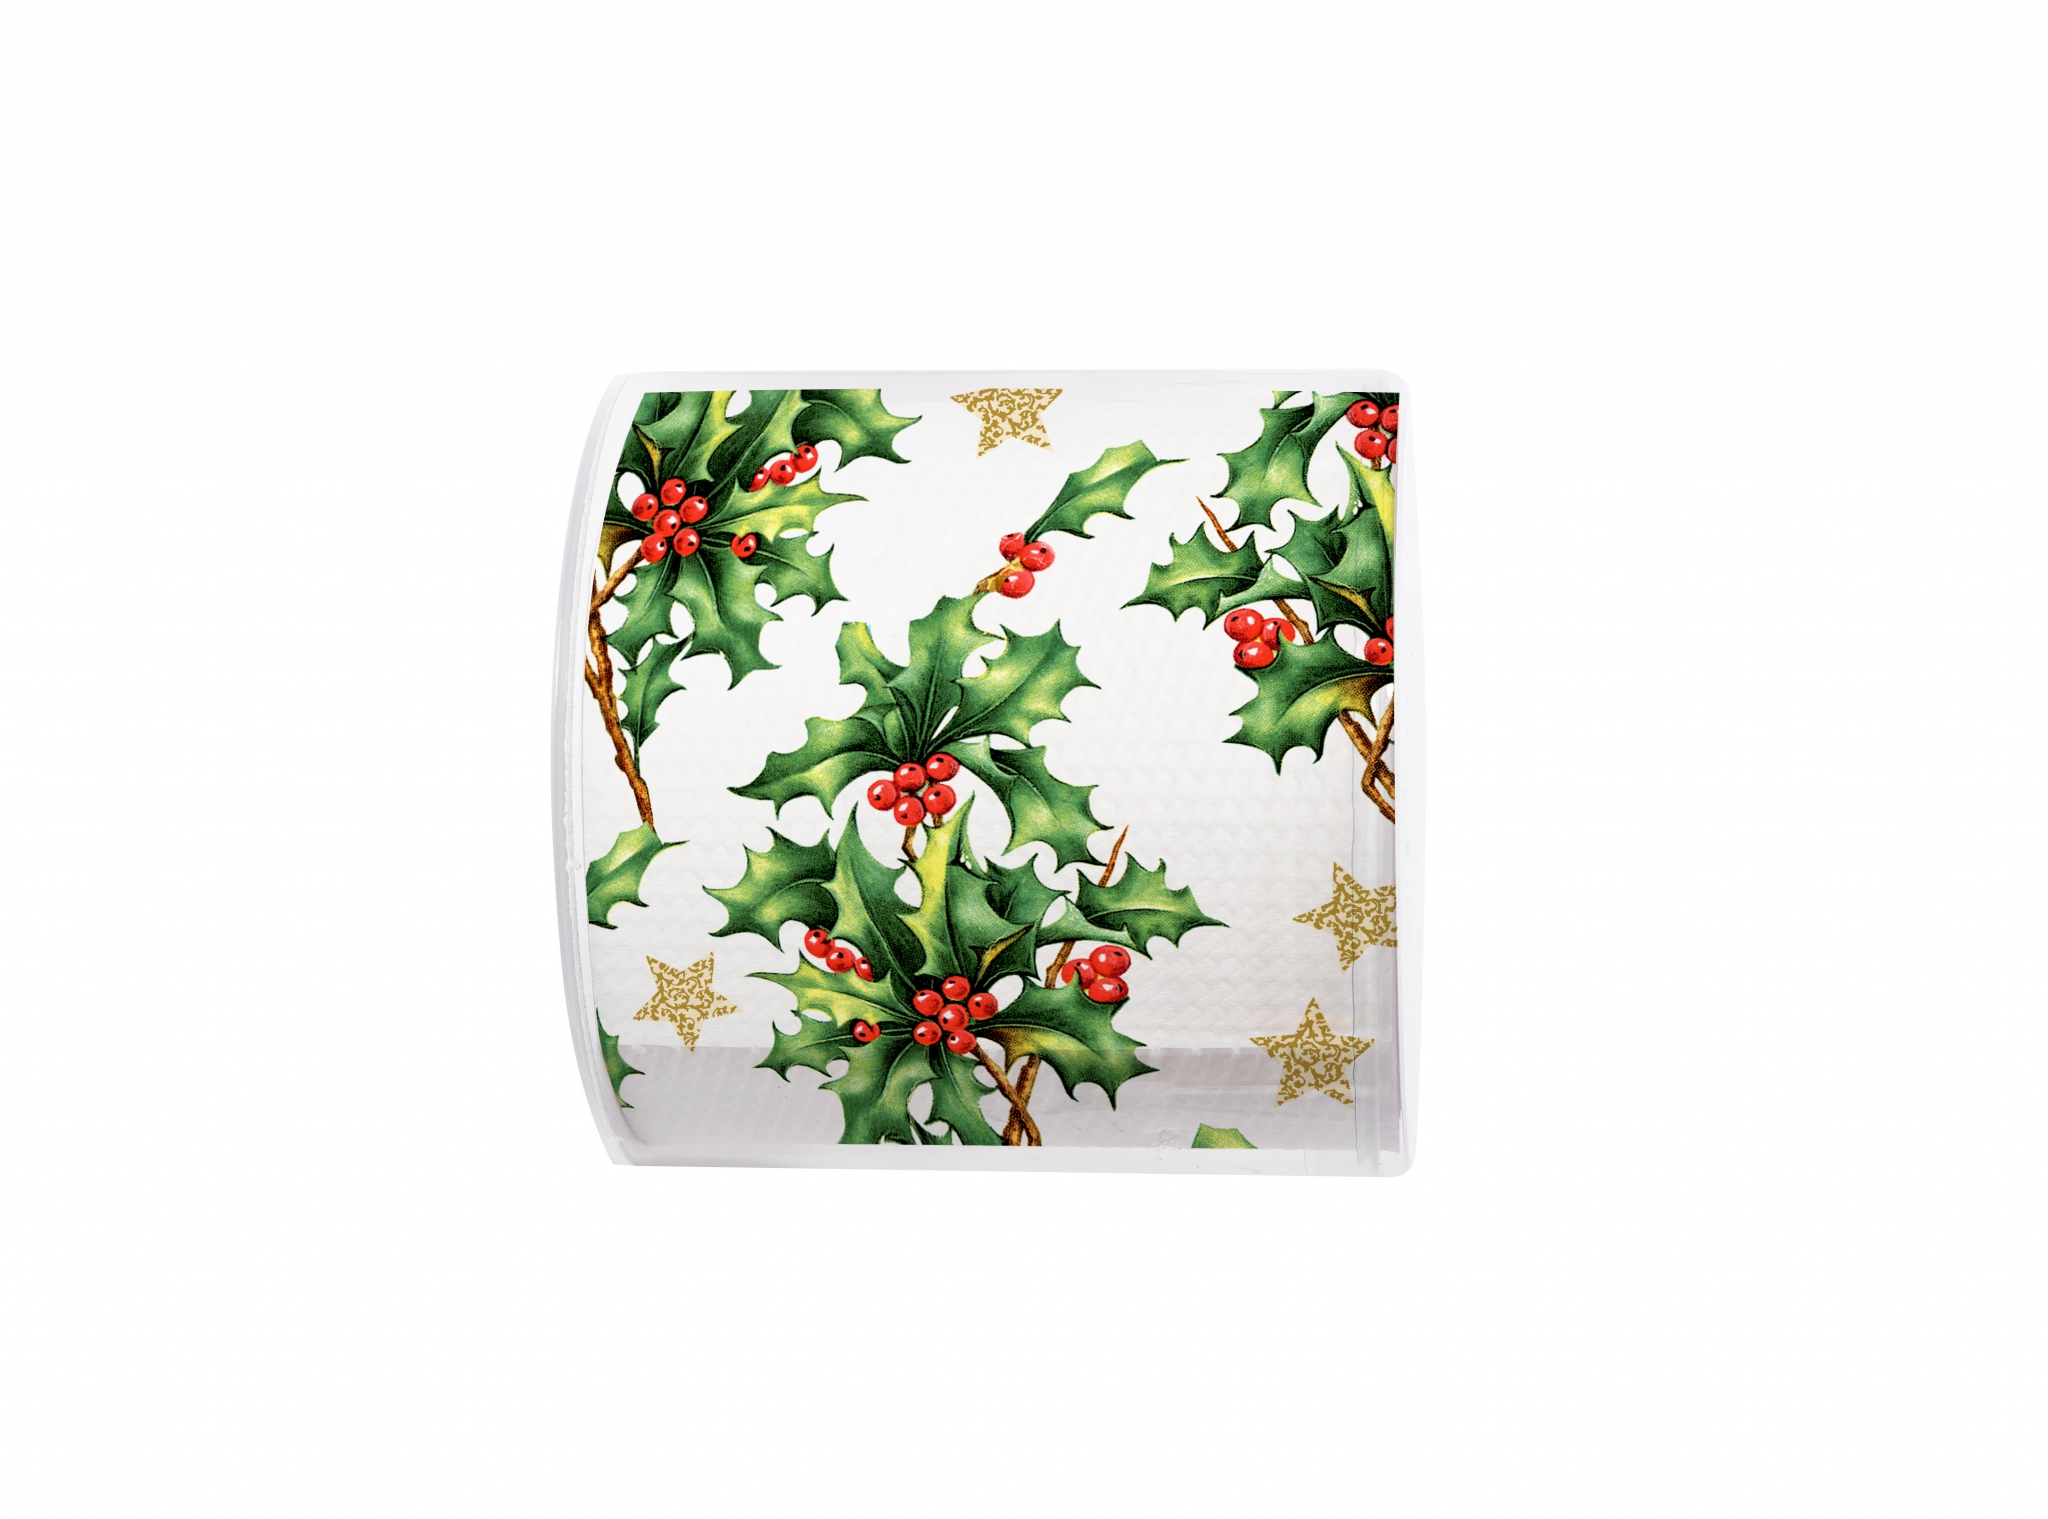 printed toilet paper - Topi Holly all over